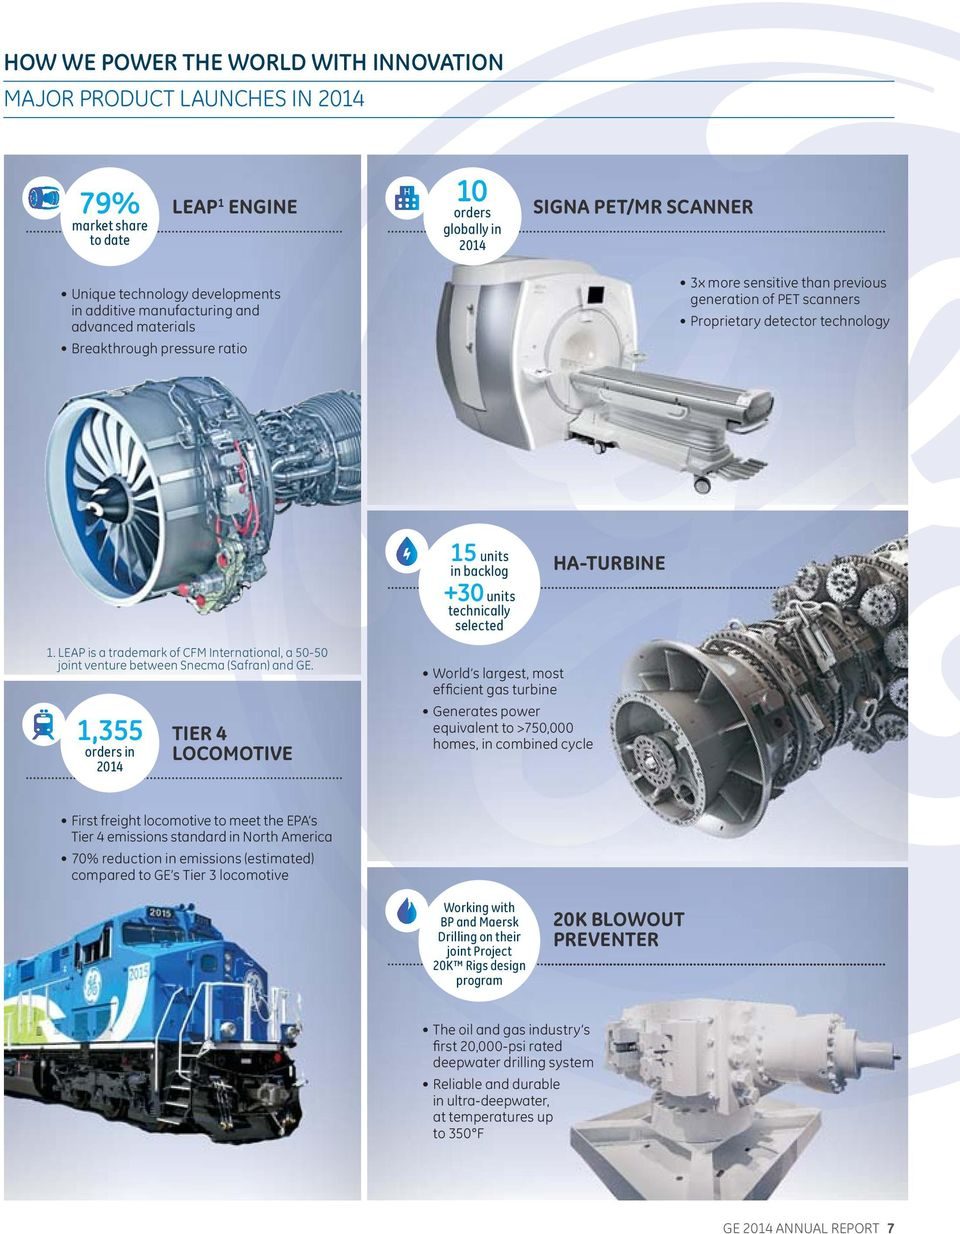 selected HA-TURBINE 1. LEAP is a trademark of CFM International, a 50-50 joint venture between Snecma (Safran) and GE.